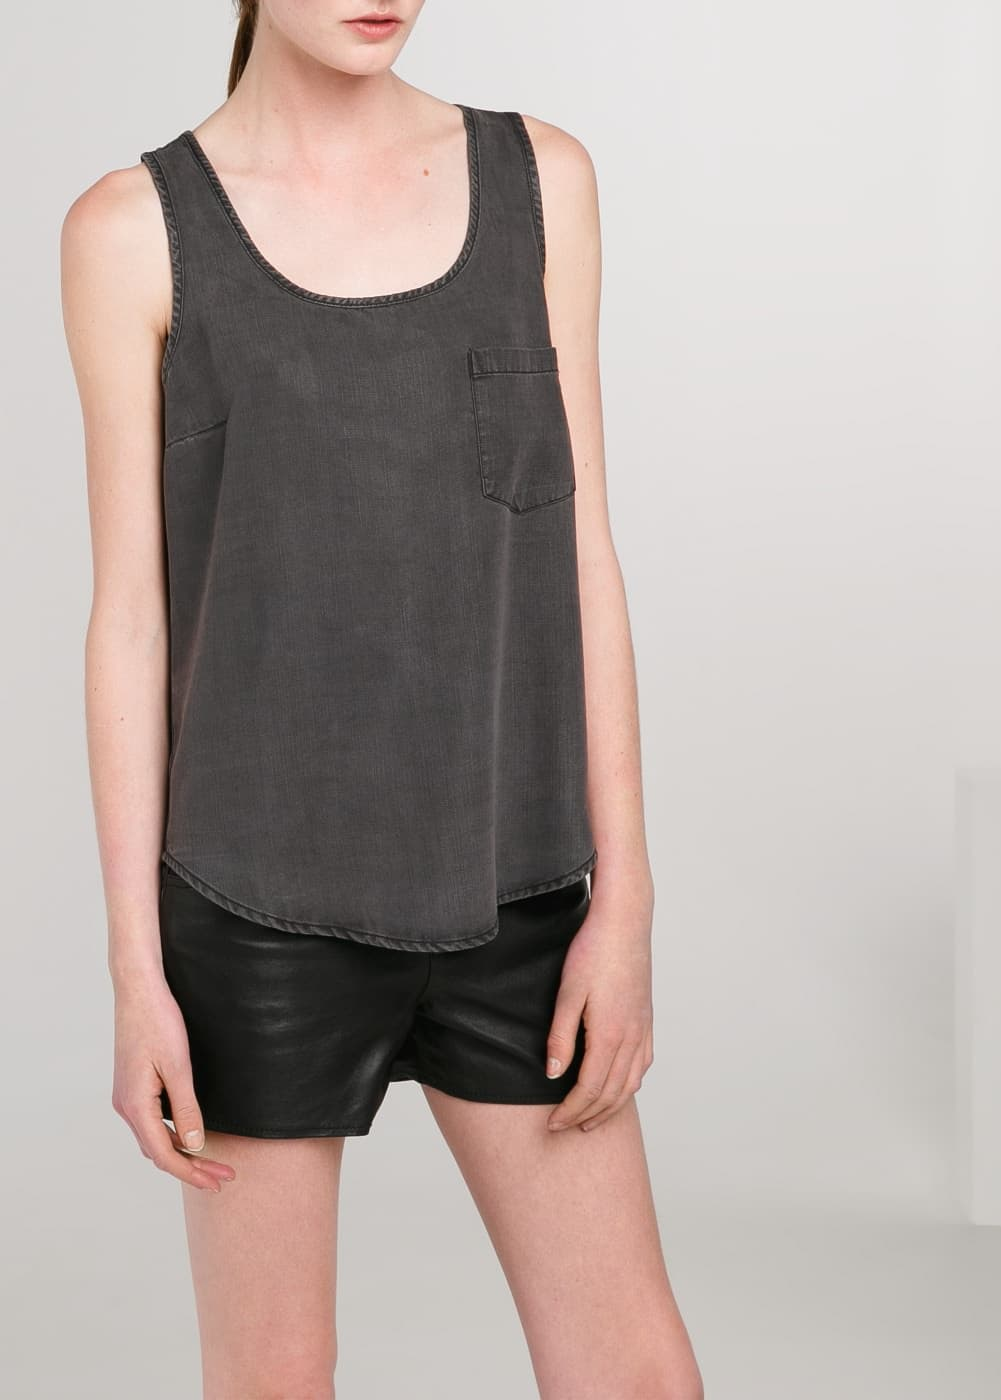 Grey soft fabric top